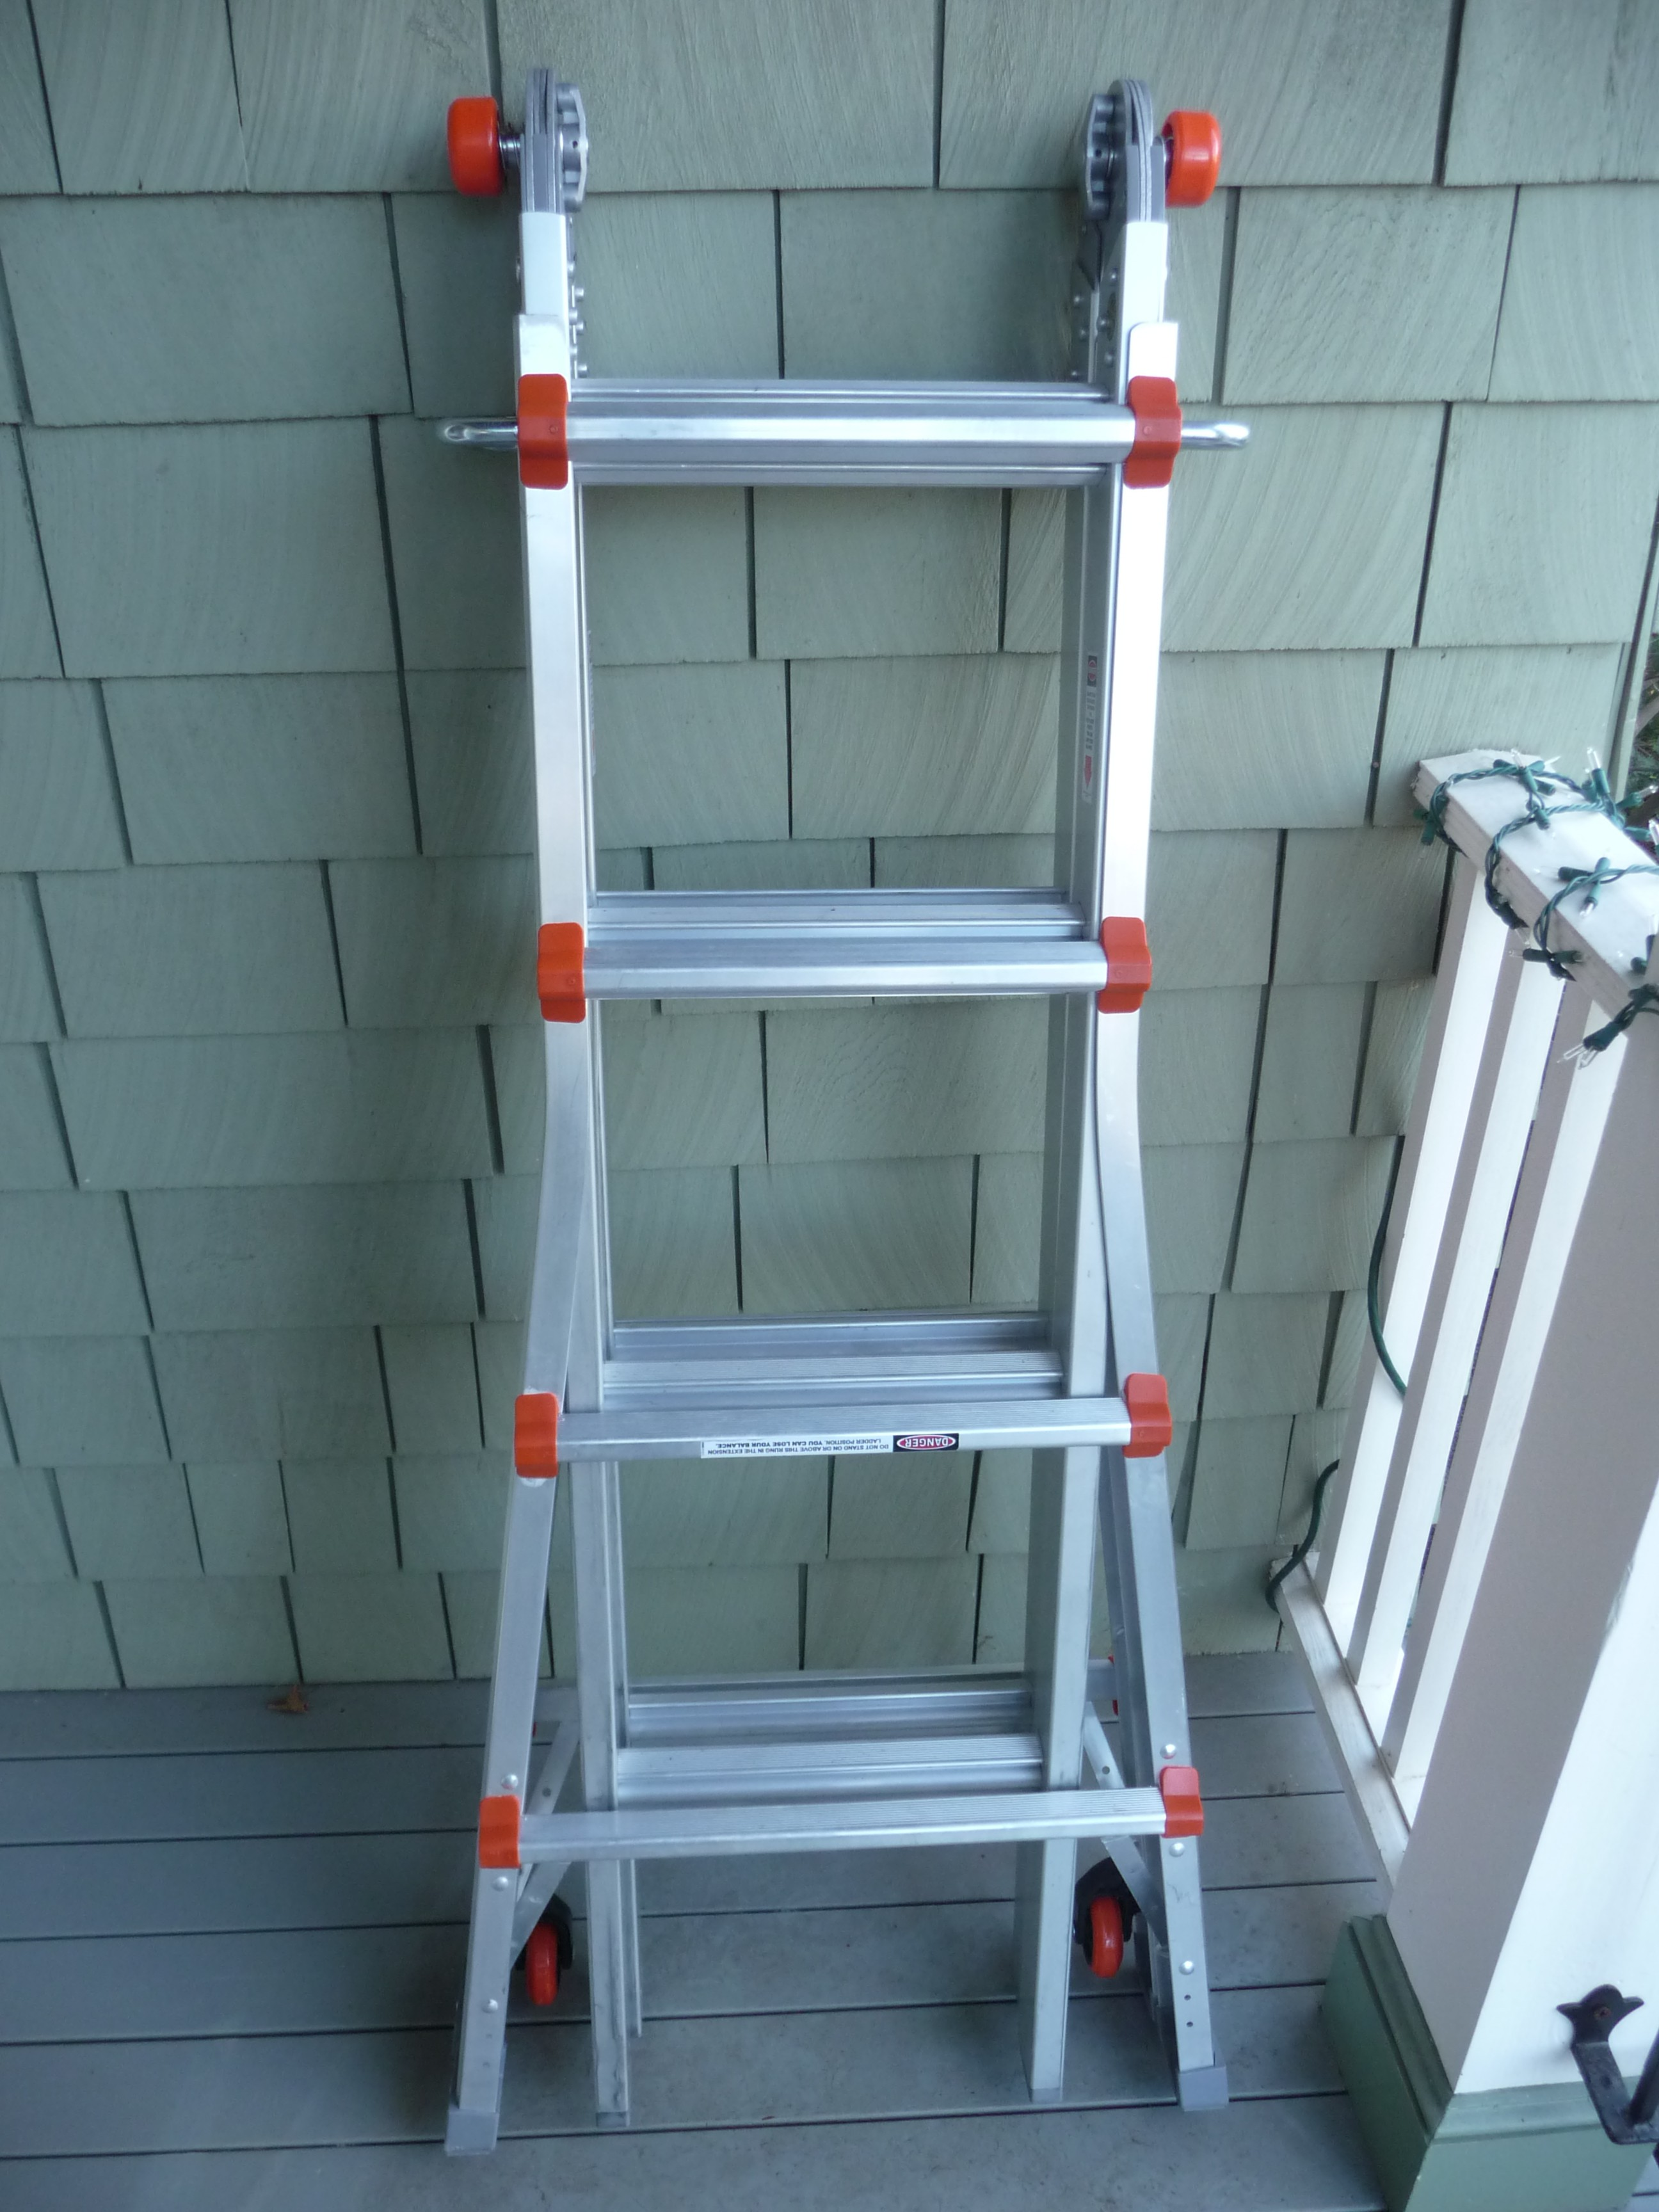 Best Home Ladder: Little Giant Alta One 17 & Megalite – Rock Solid, Lighter, Adapts To Every Job